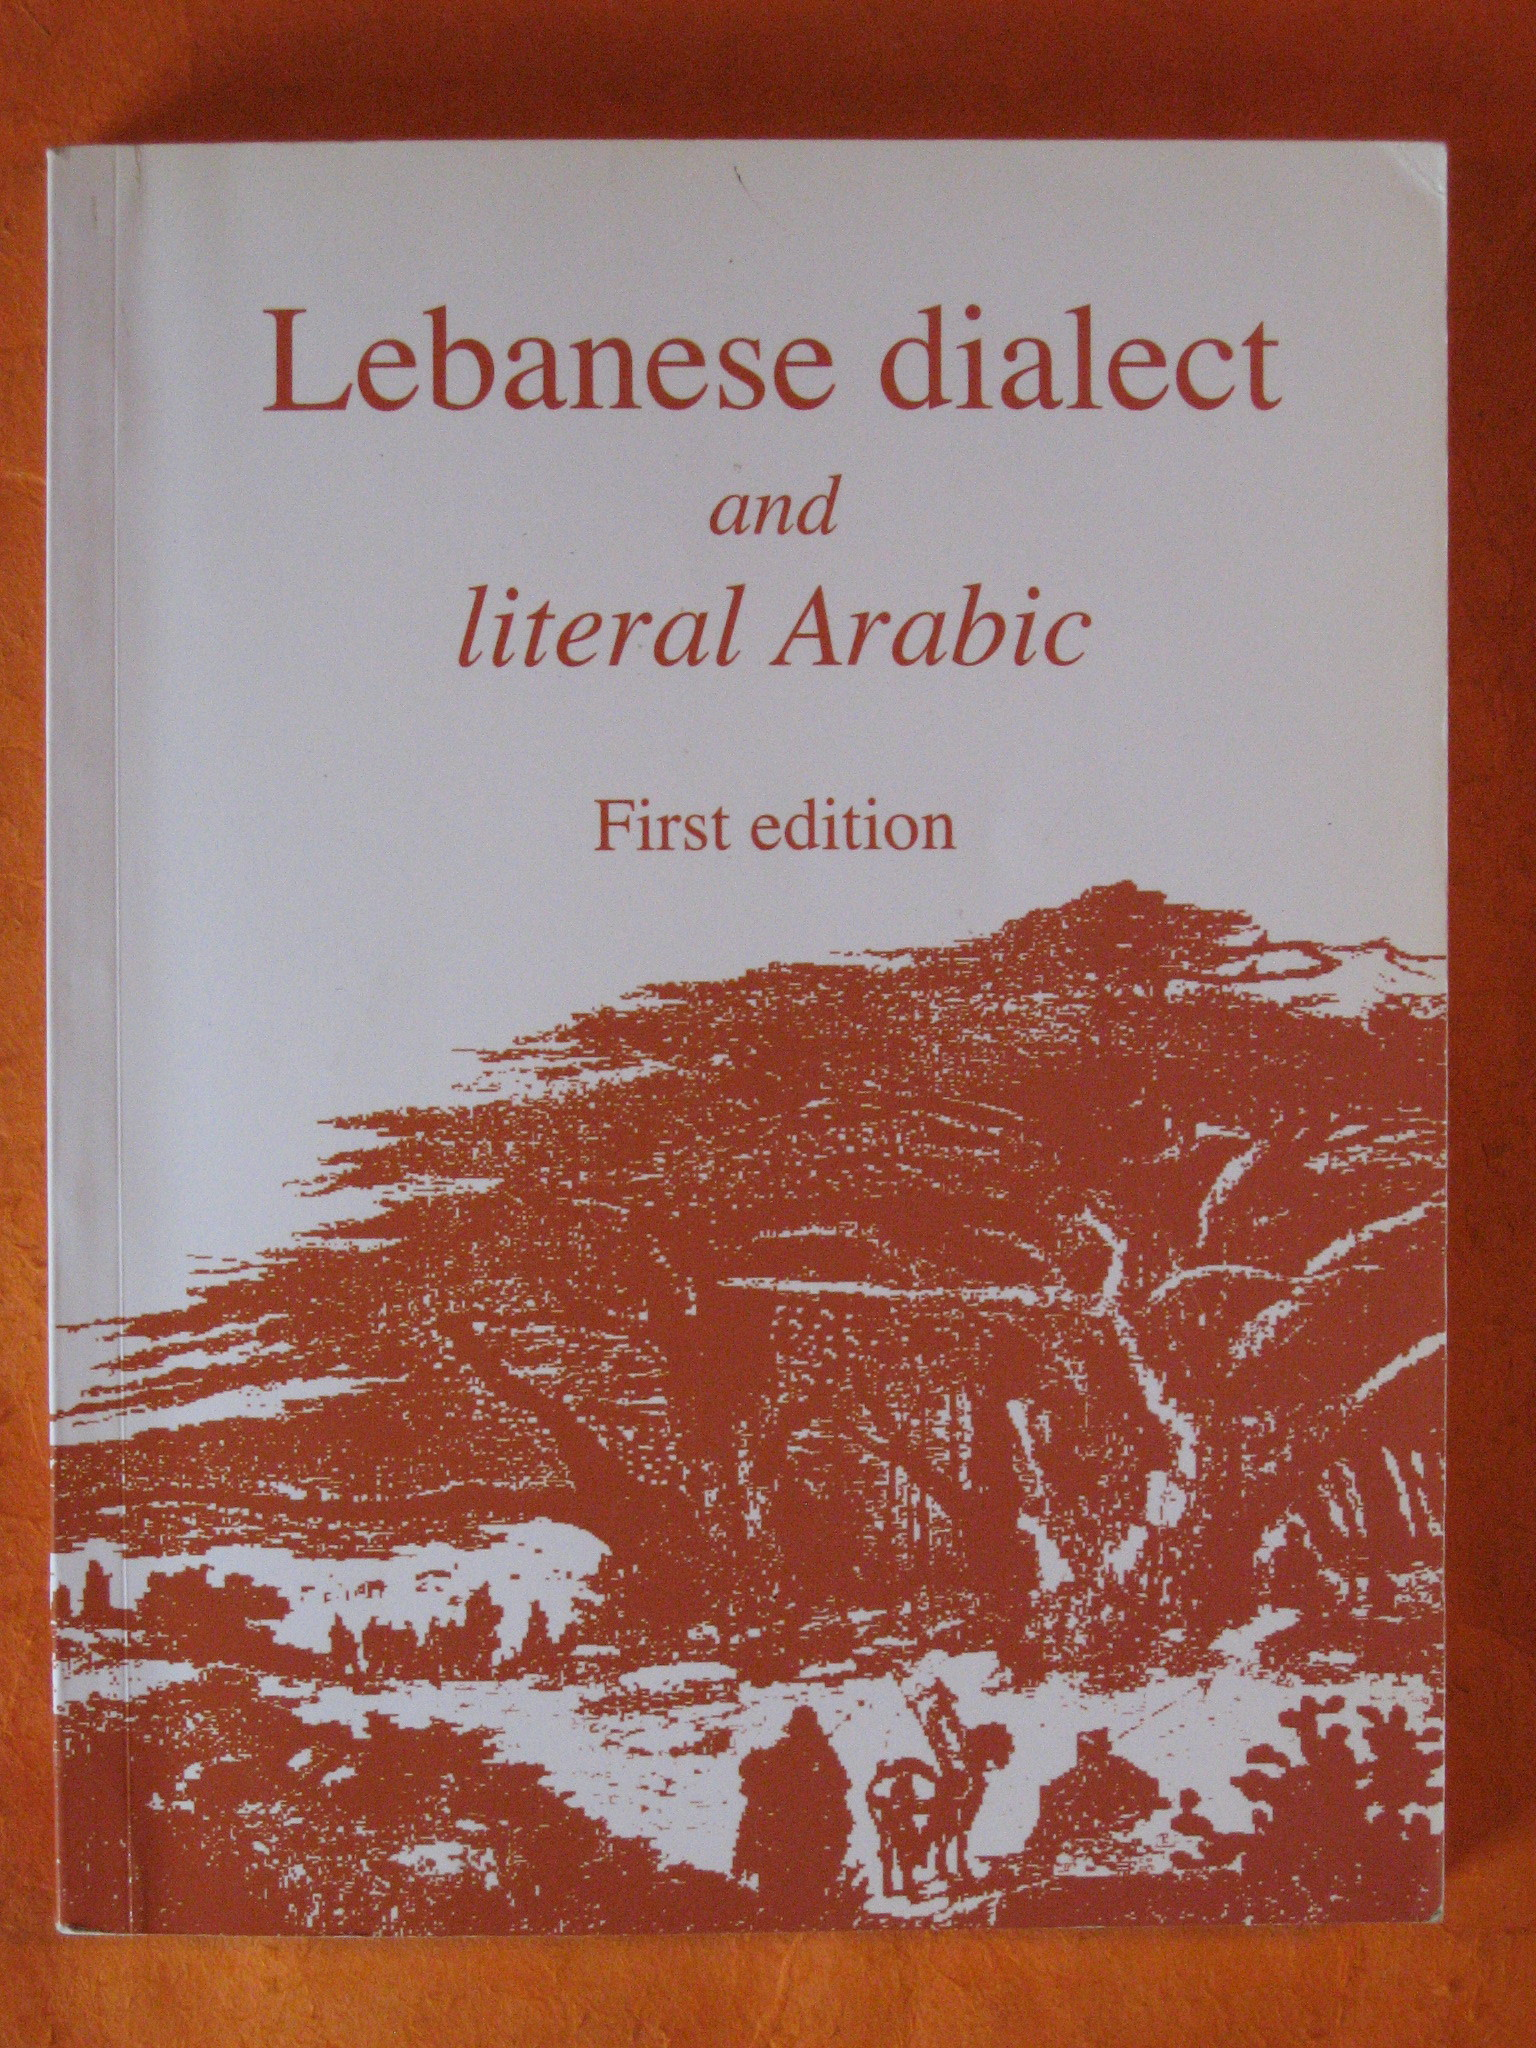 Lebanese Dialect and Literal Arabic; with CD, H. Haddad-Fadel